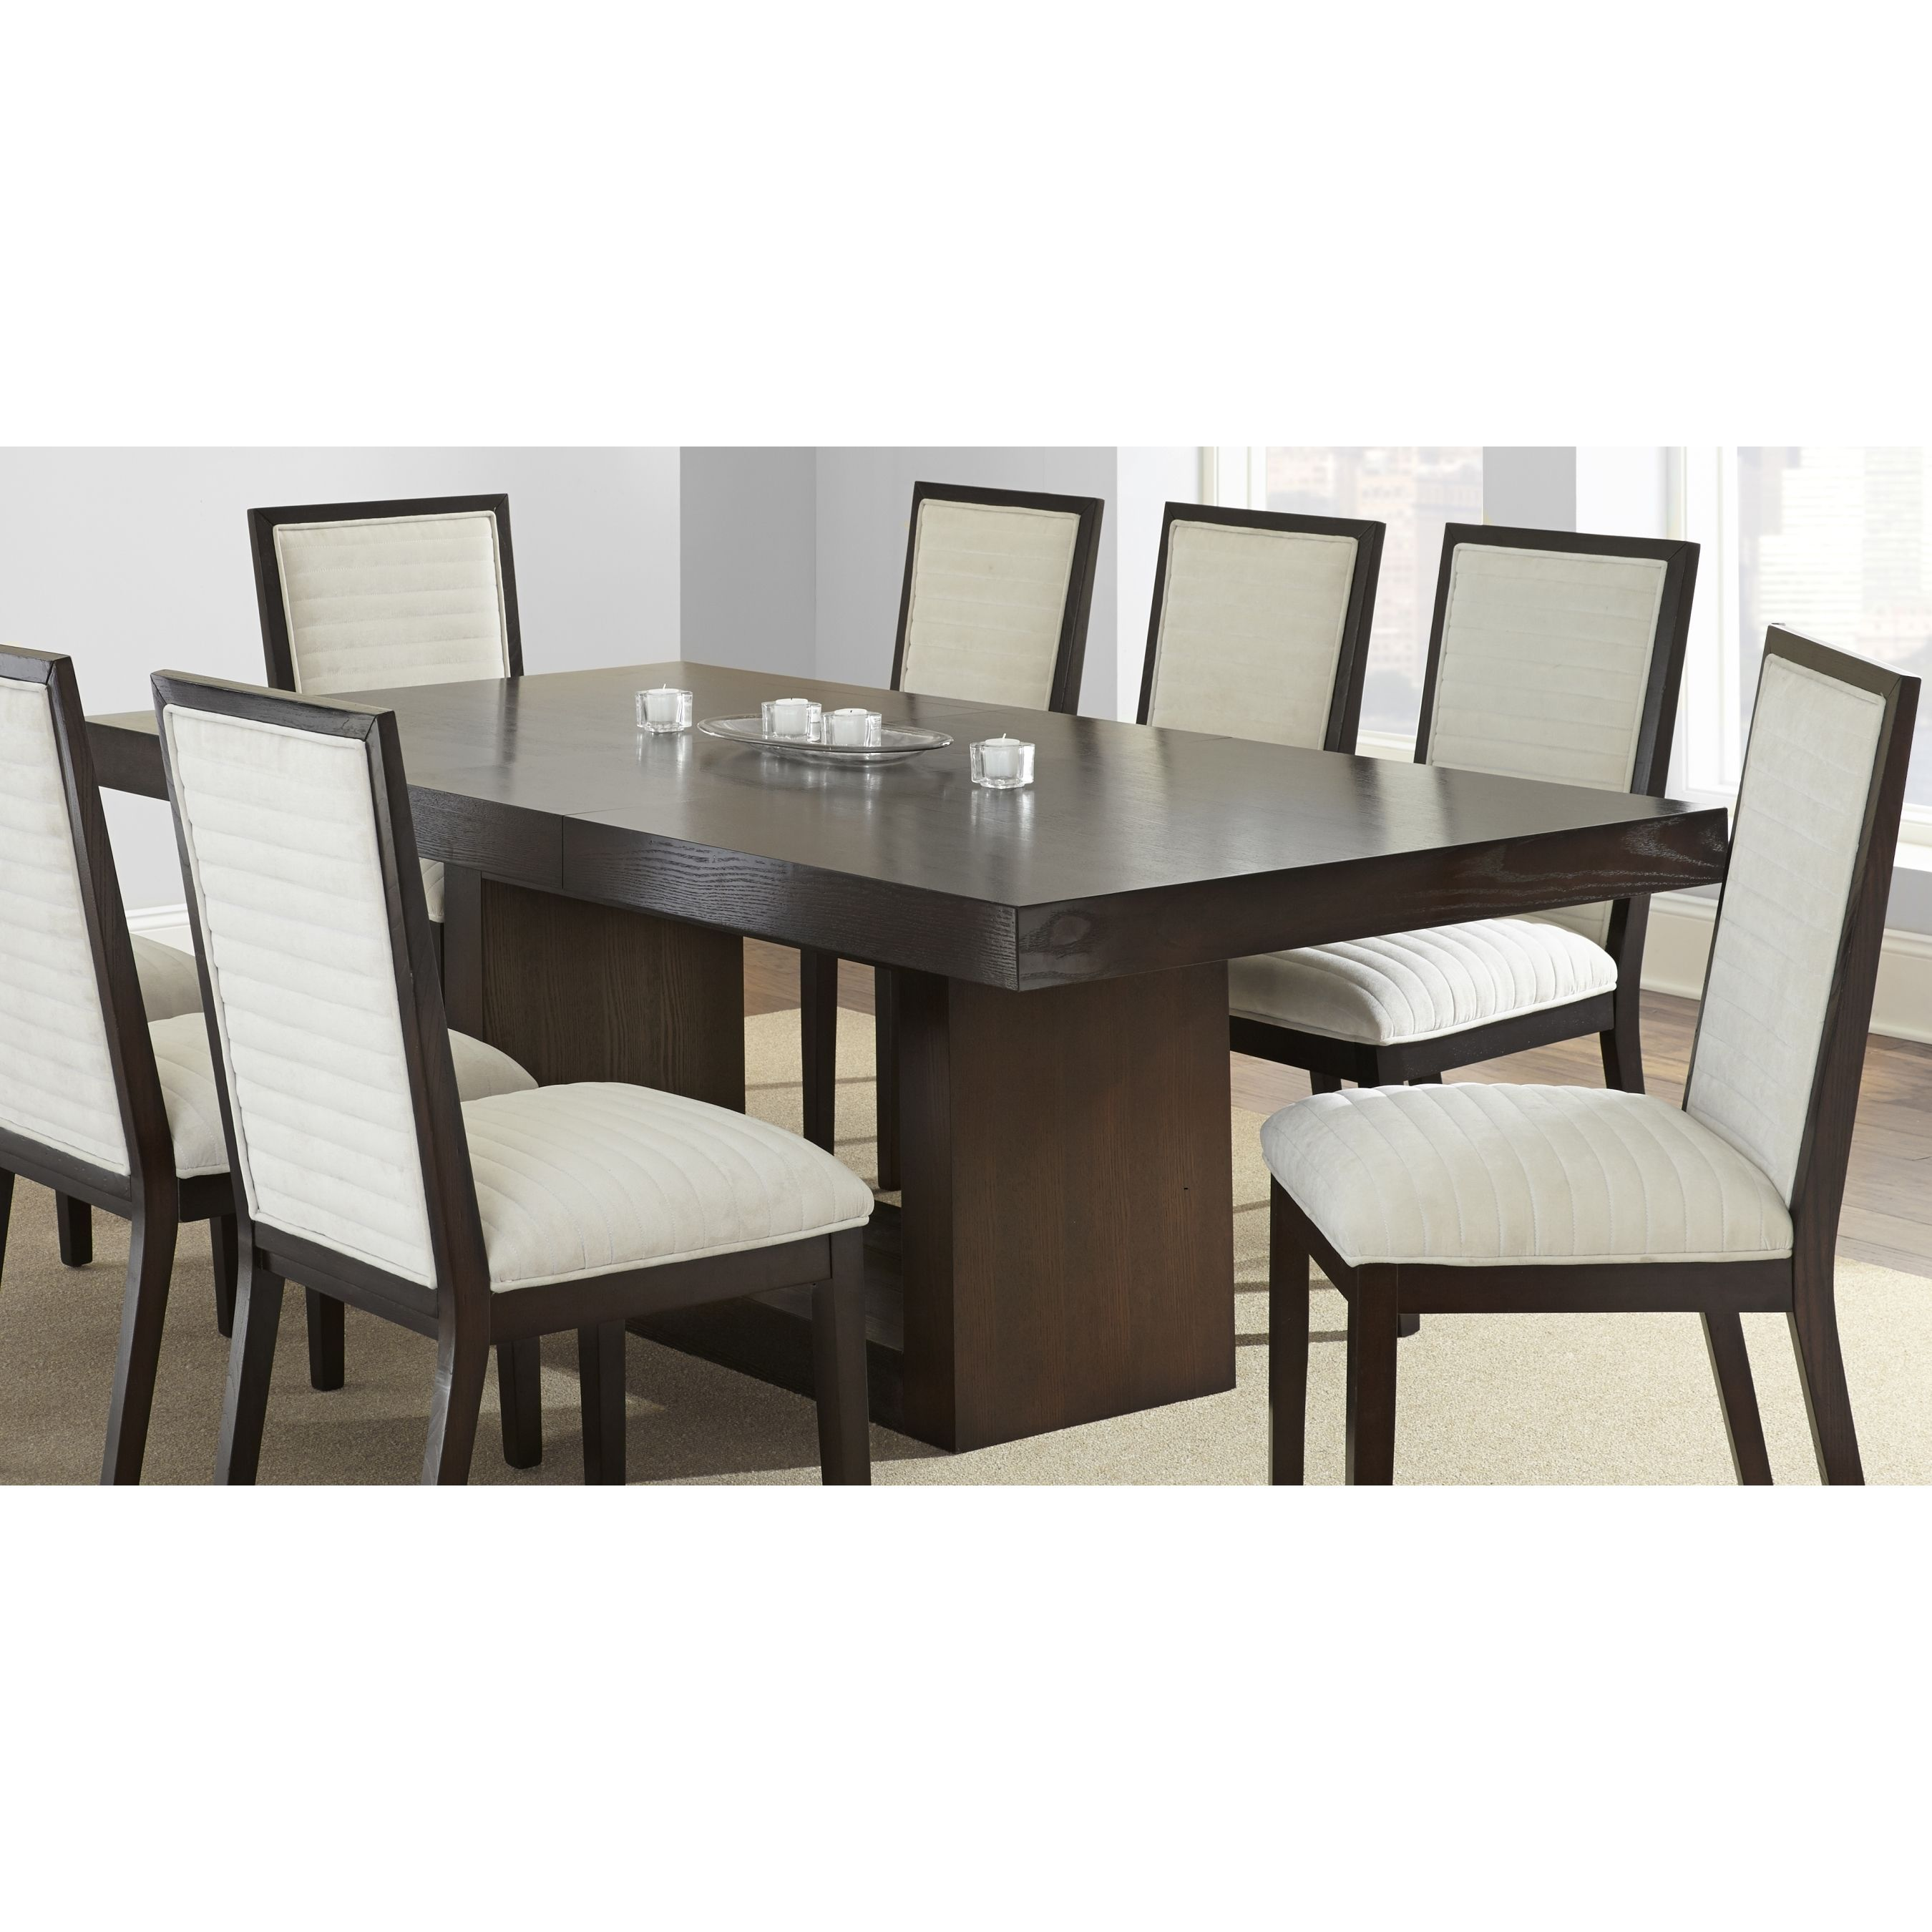 Greyson Living Amia Espresso Dining Table With Removable